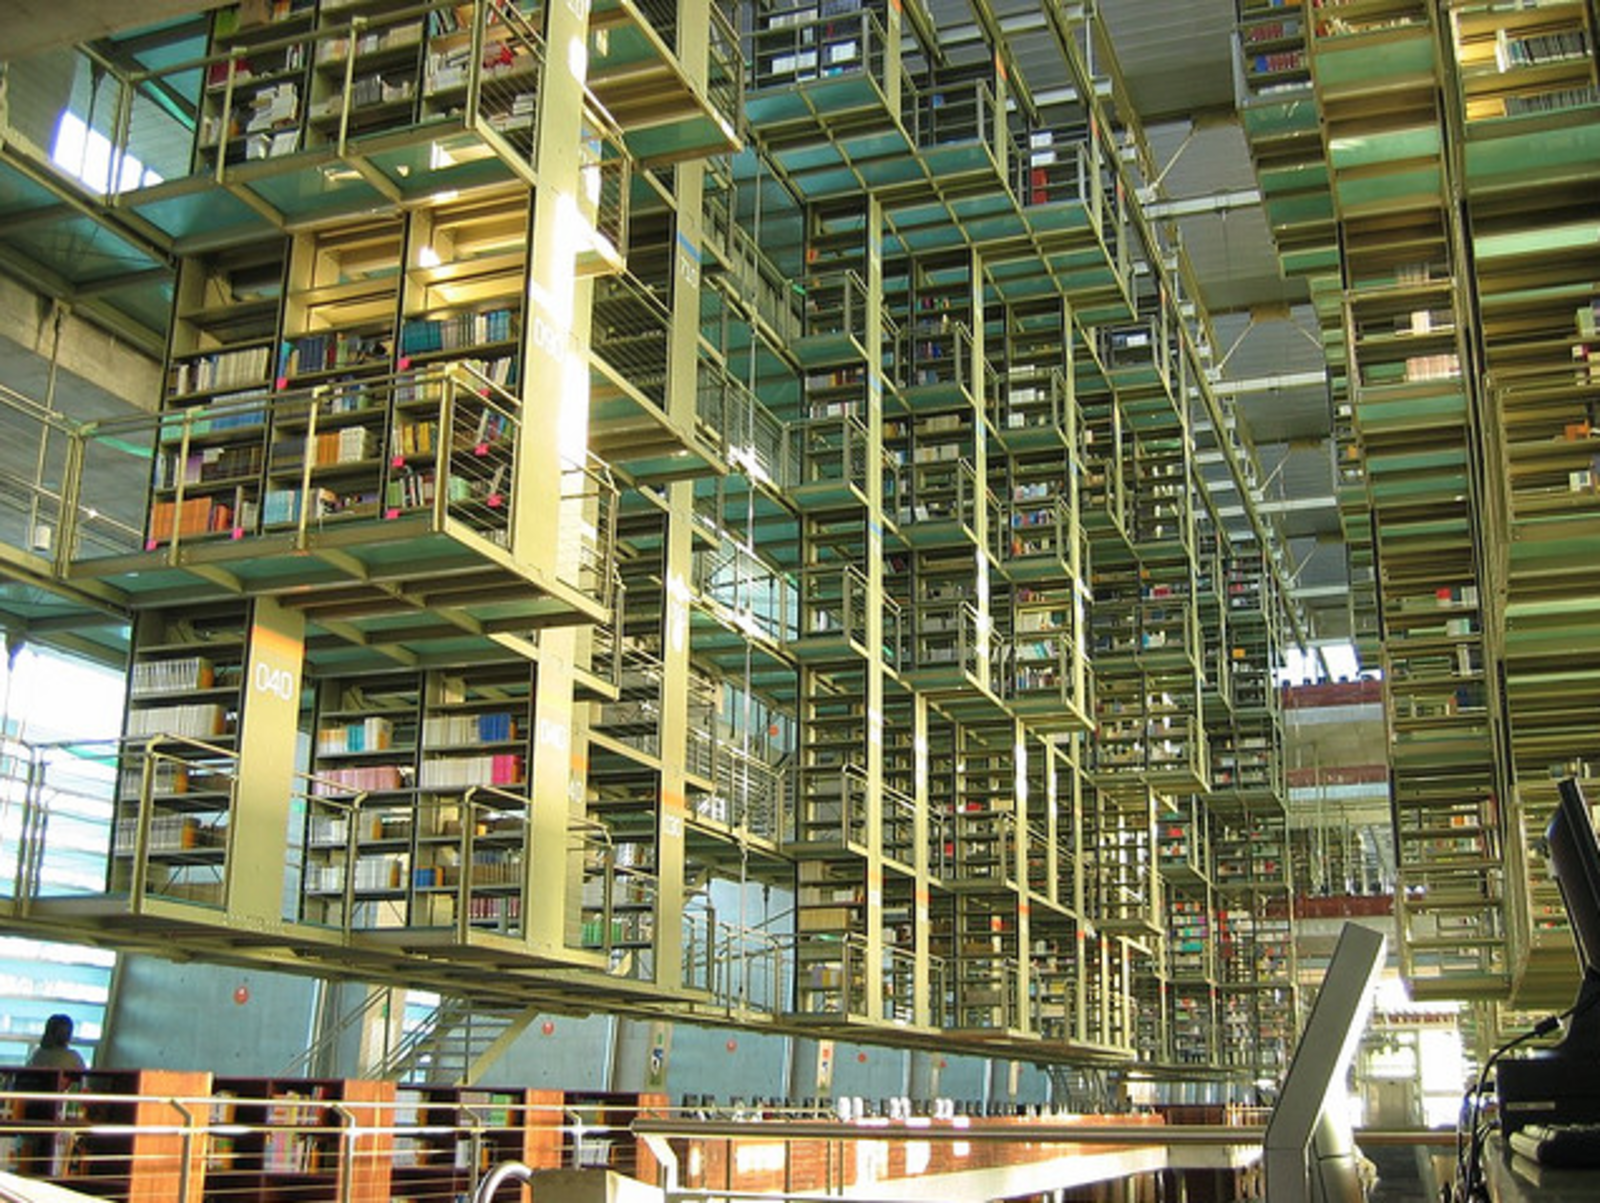 """Biblioteca Vasconcelos   """"When President Vicente Fox inaugurated the library on May 16, 2006, he described it as one of the most advanced constructions of the 21st century, and said it would be spoken of throughout the world. Even thought the library was plagued by many construction defects that forced its closure in March 2007, it is now fully operational and its main hall is one of the most powerful architectural spaces recently built in Mexico City.""""  Photo 3 of 7 in City Guide: 10 Places to Visit in Mexico City"""